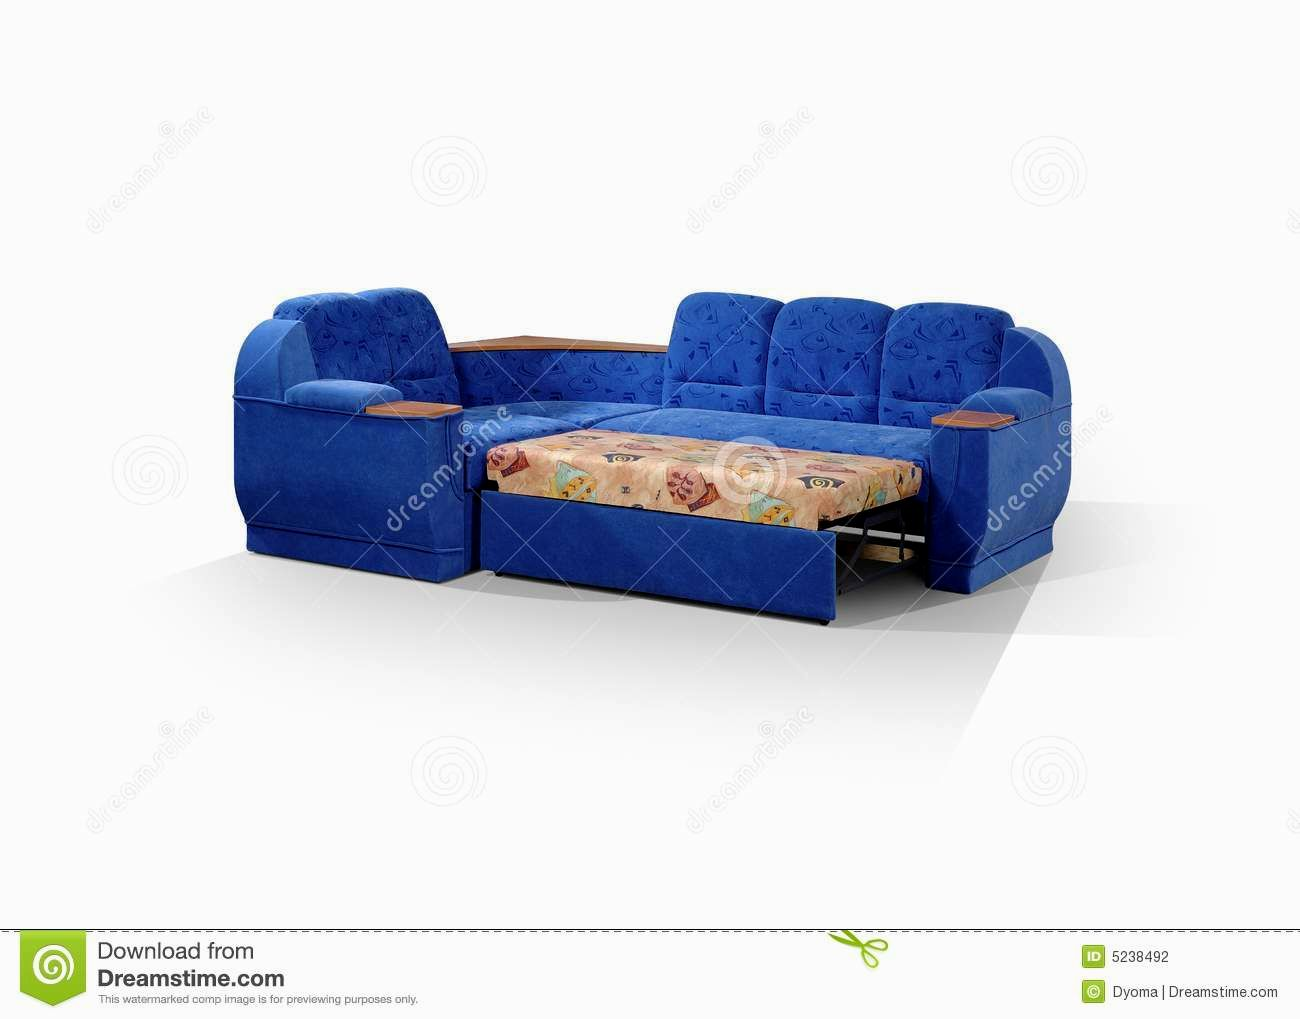 luxury single sofa bed pattern-Cool Single sofa Bed Concept